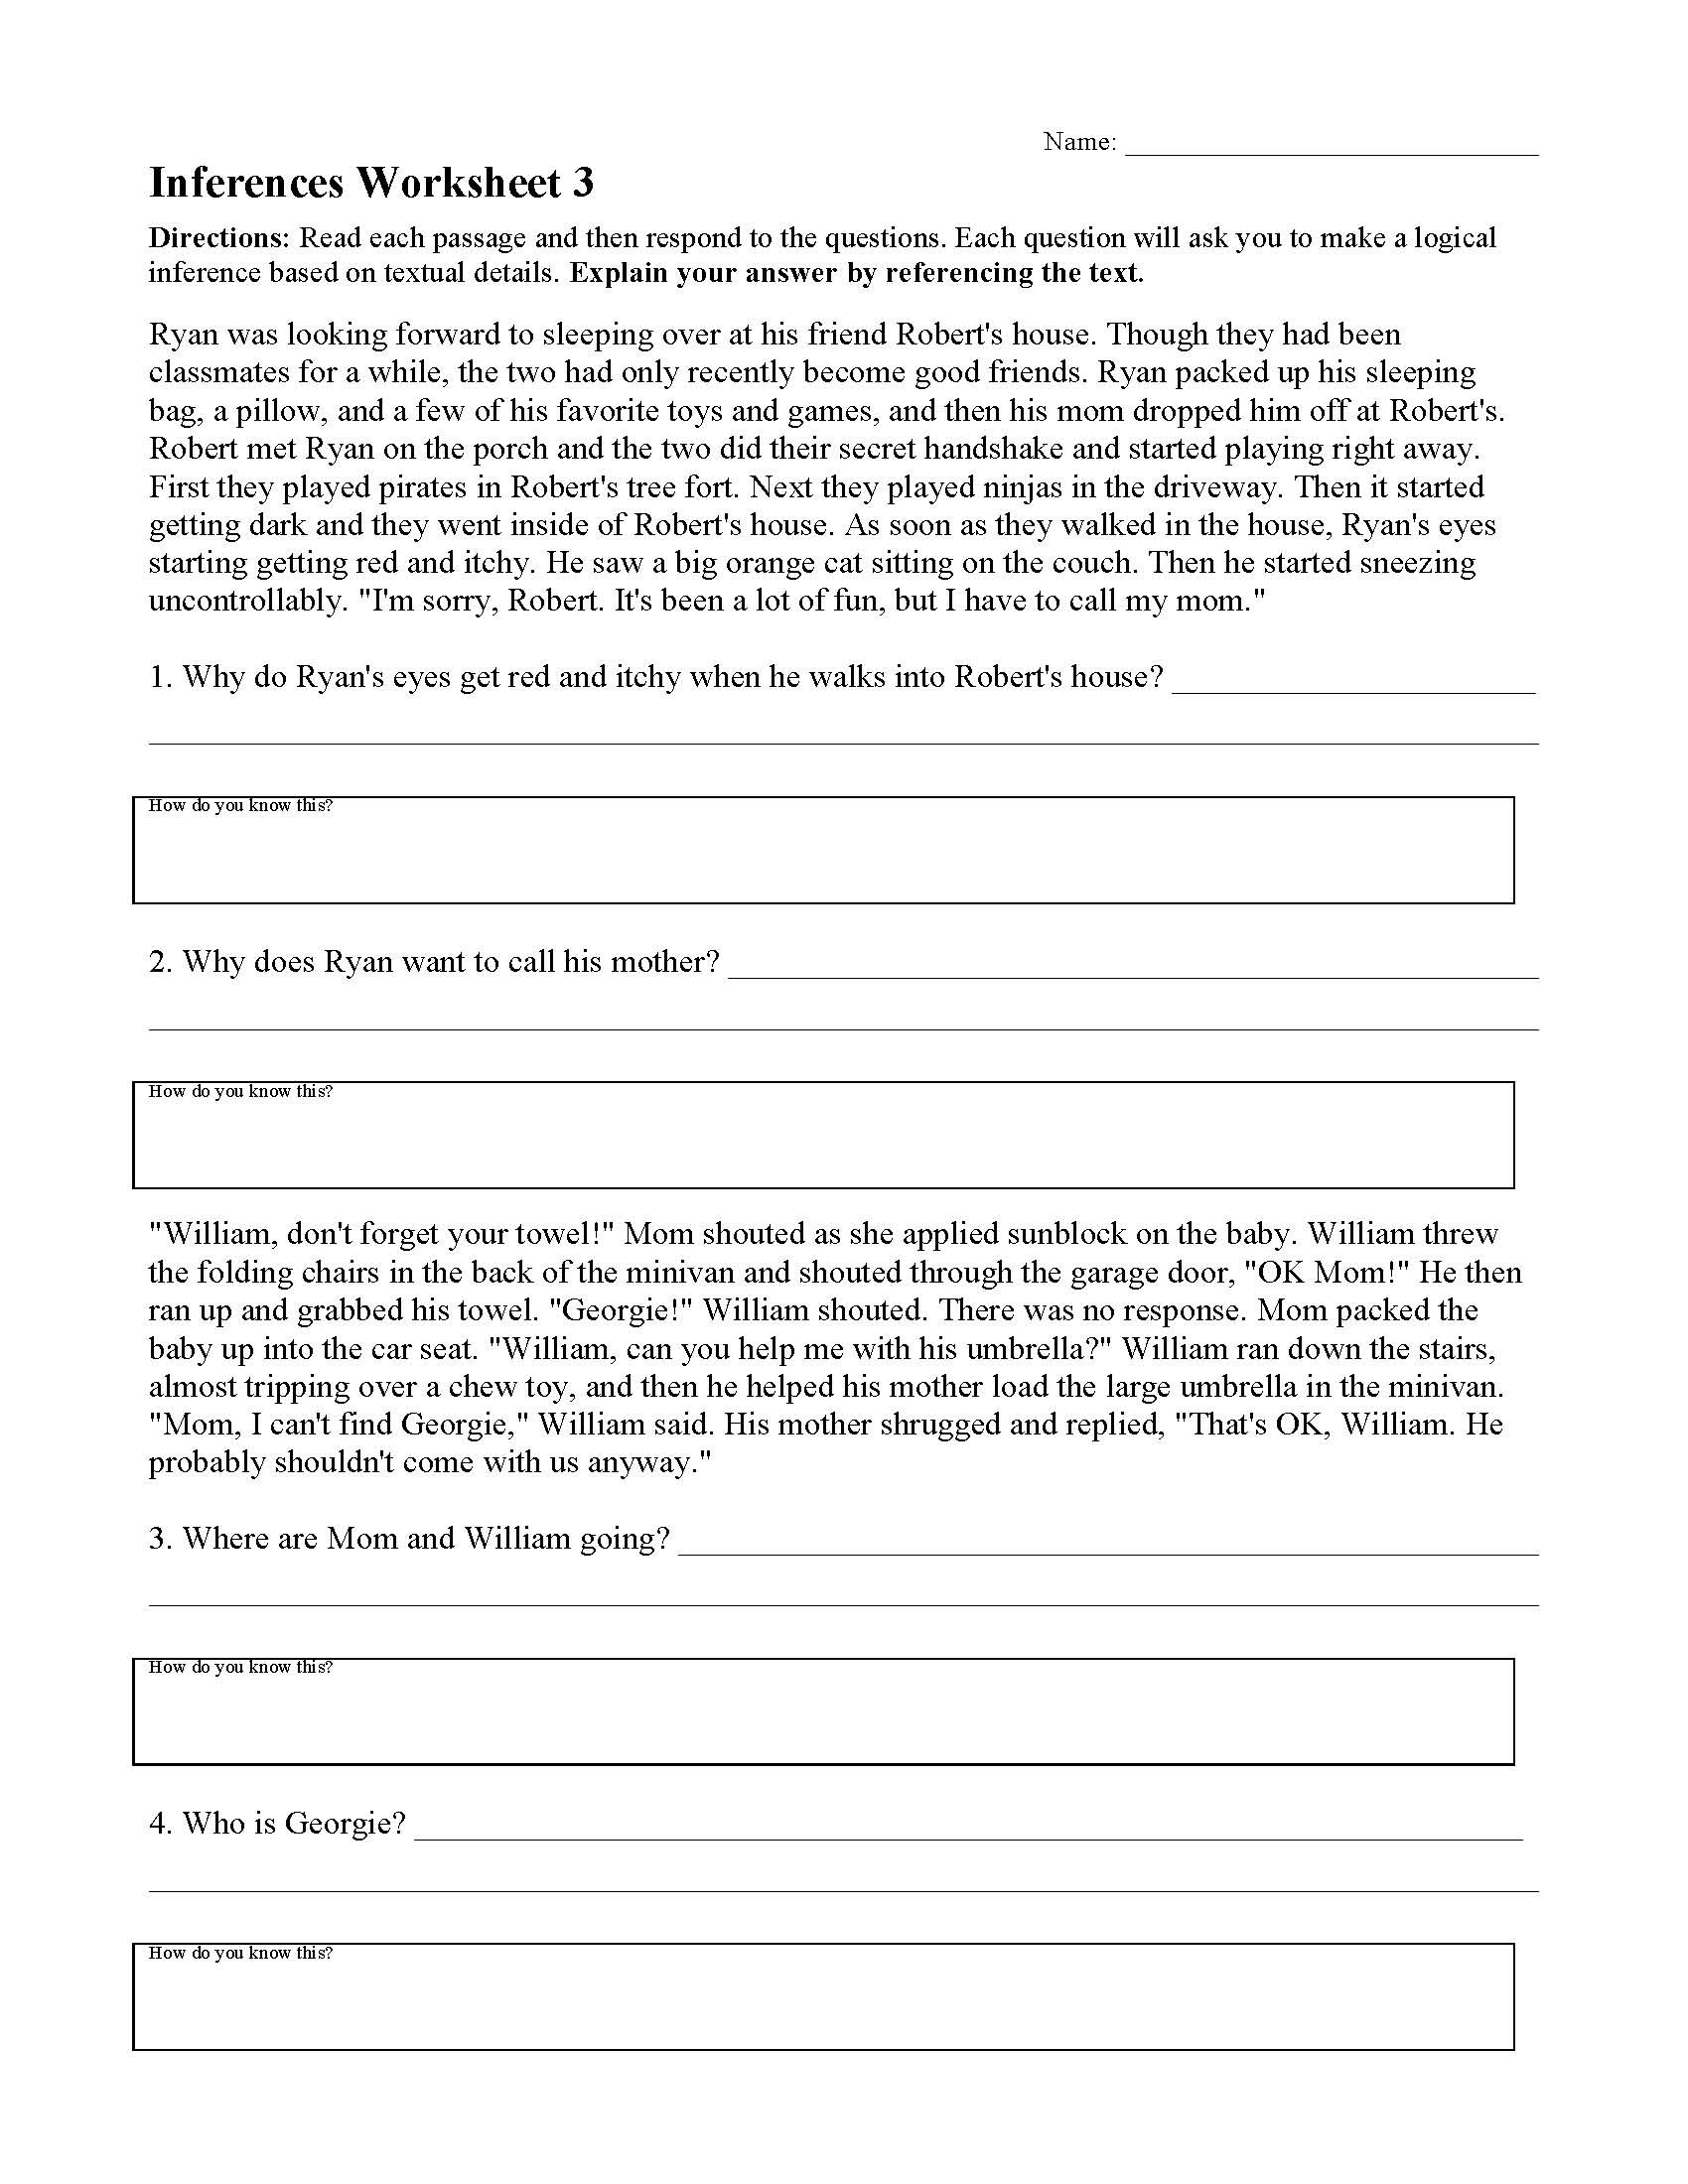 Prediction Worksheets for 3rd Grade Inferences Worksheets